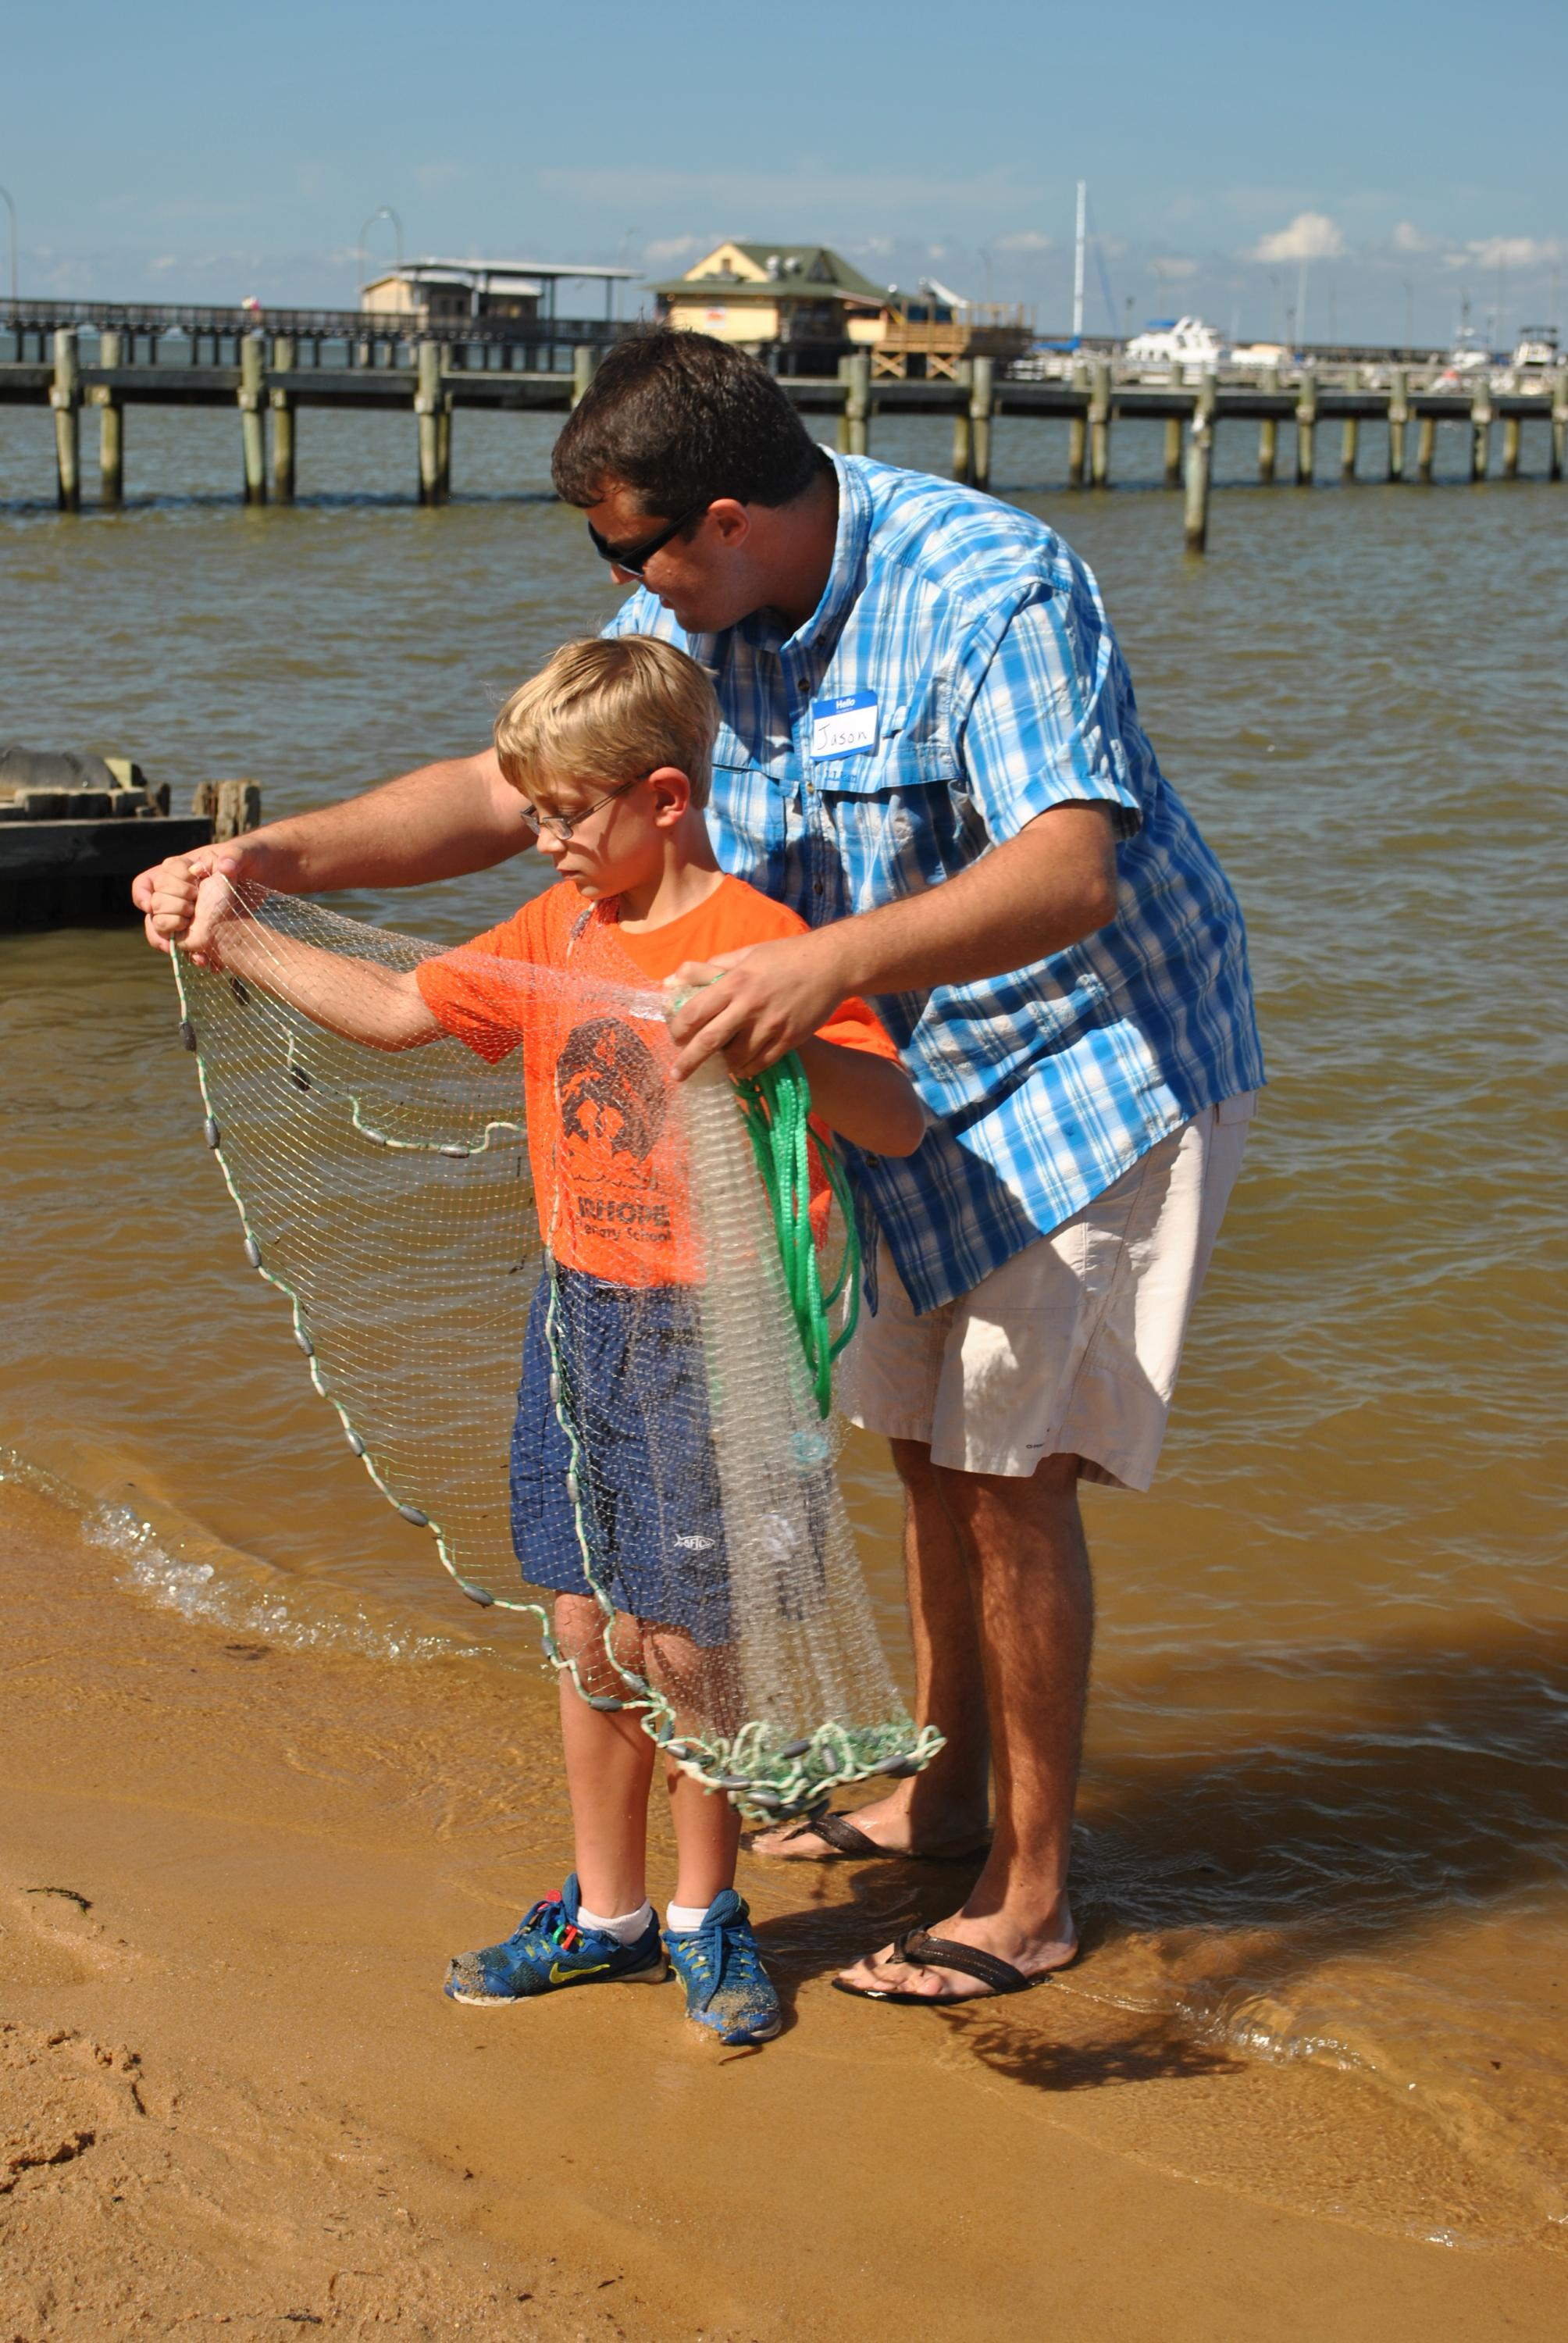 A parent volunteers to teach a child how to throw a cast net.